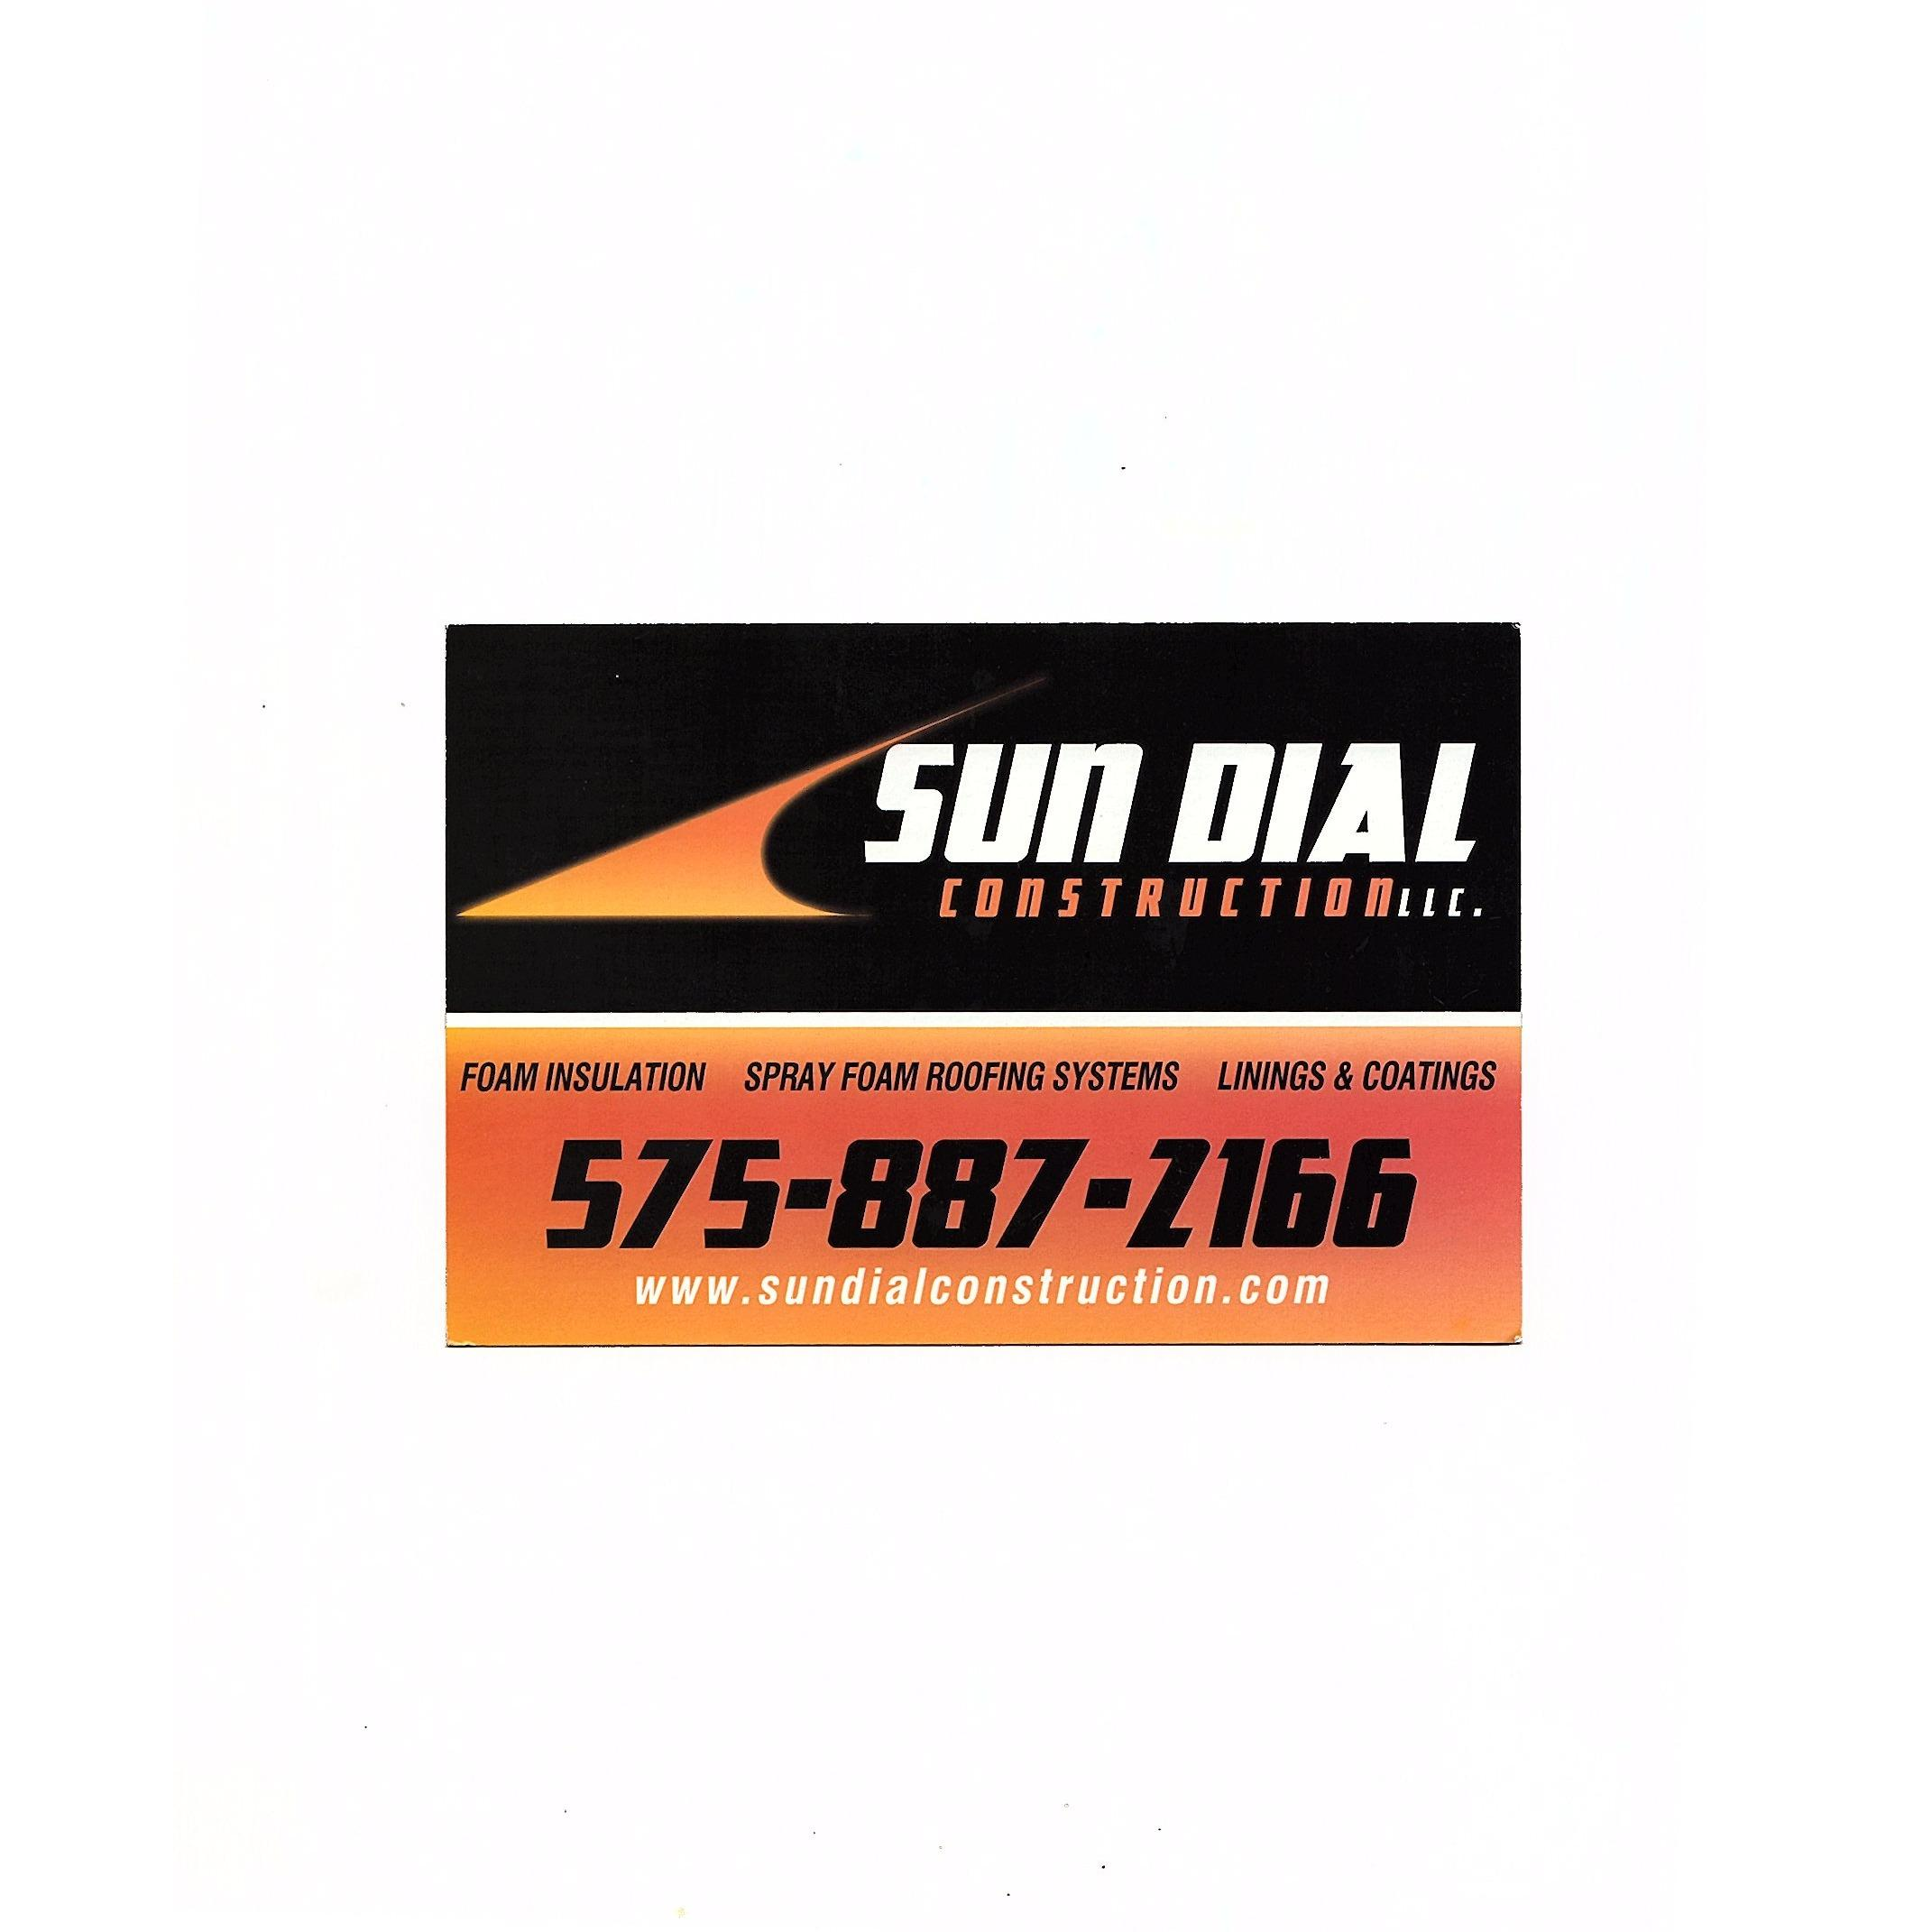 Sundial Homes and Construction, LLC